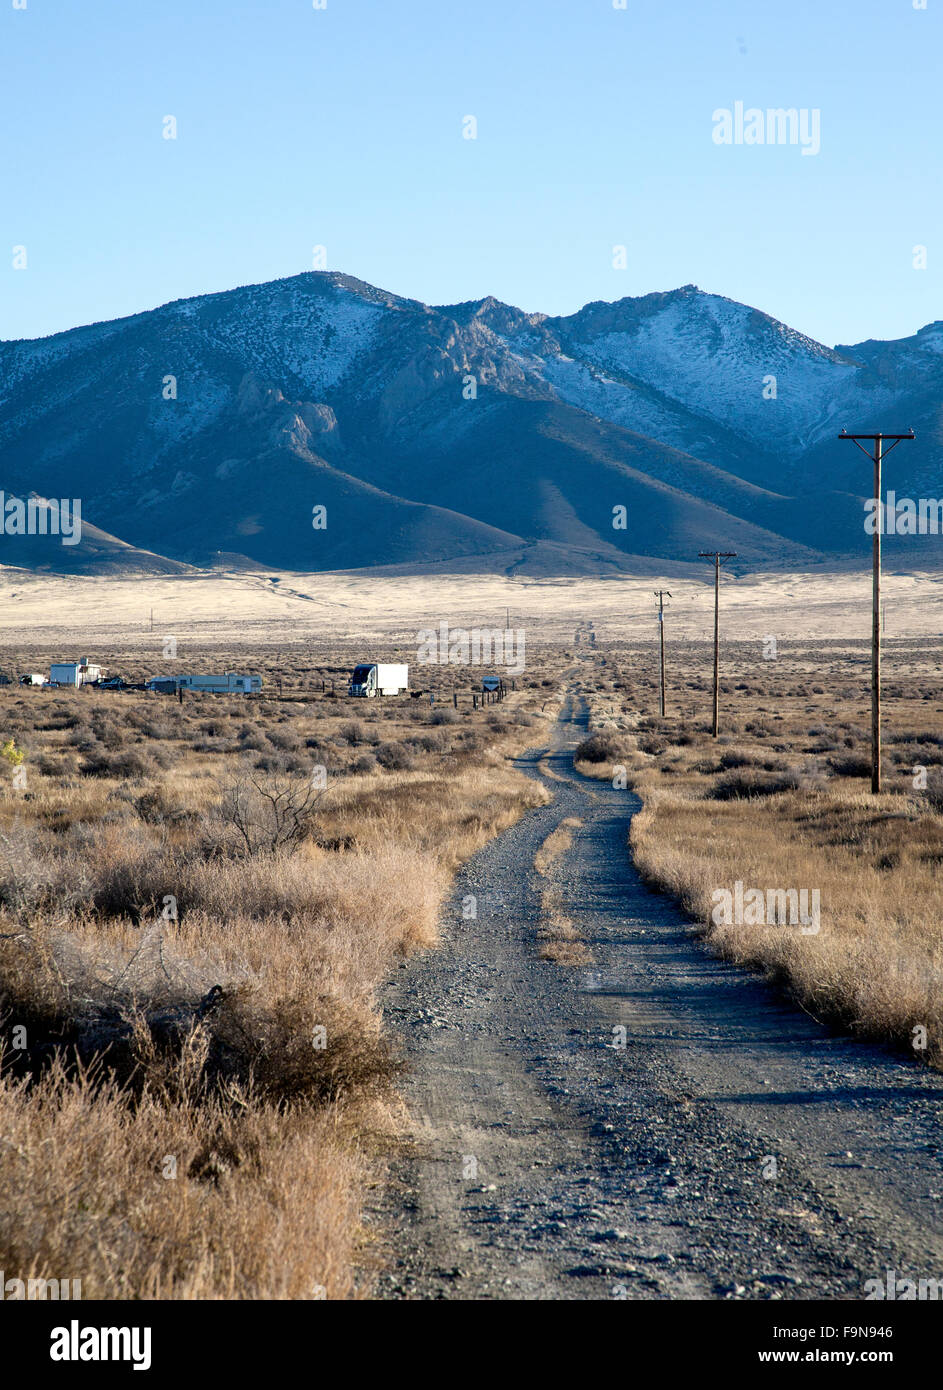 Gravel and dirt road leads to mountain with snow in the Nevada desert, US, 2015. - Stock Image